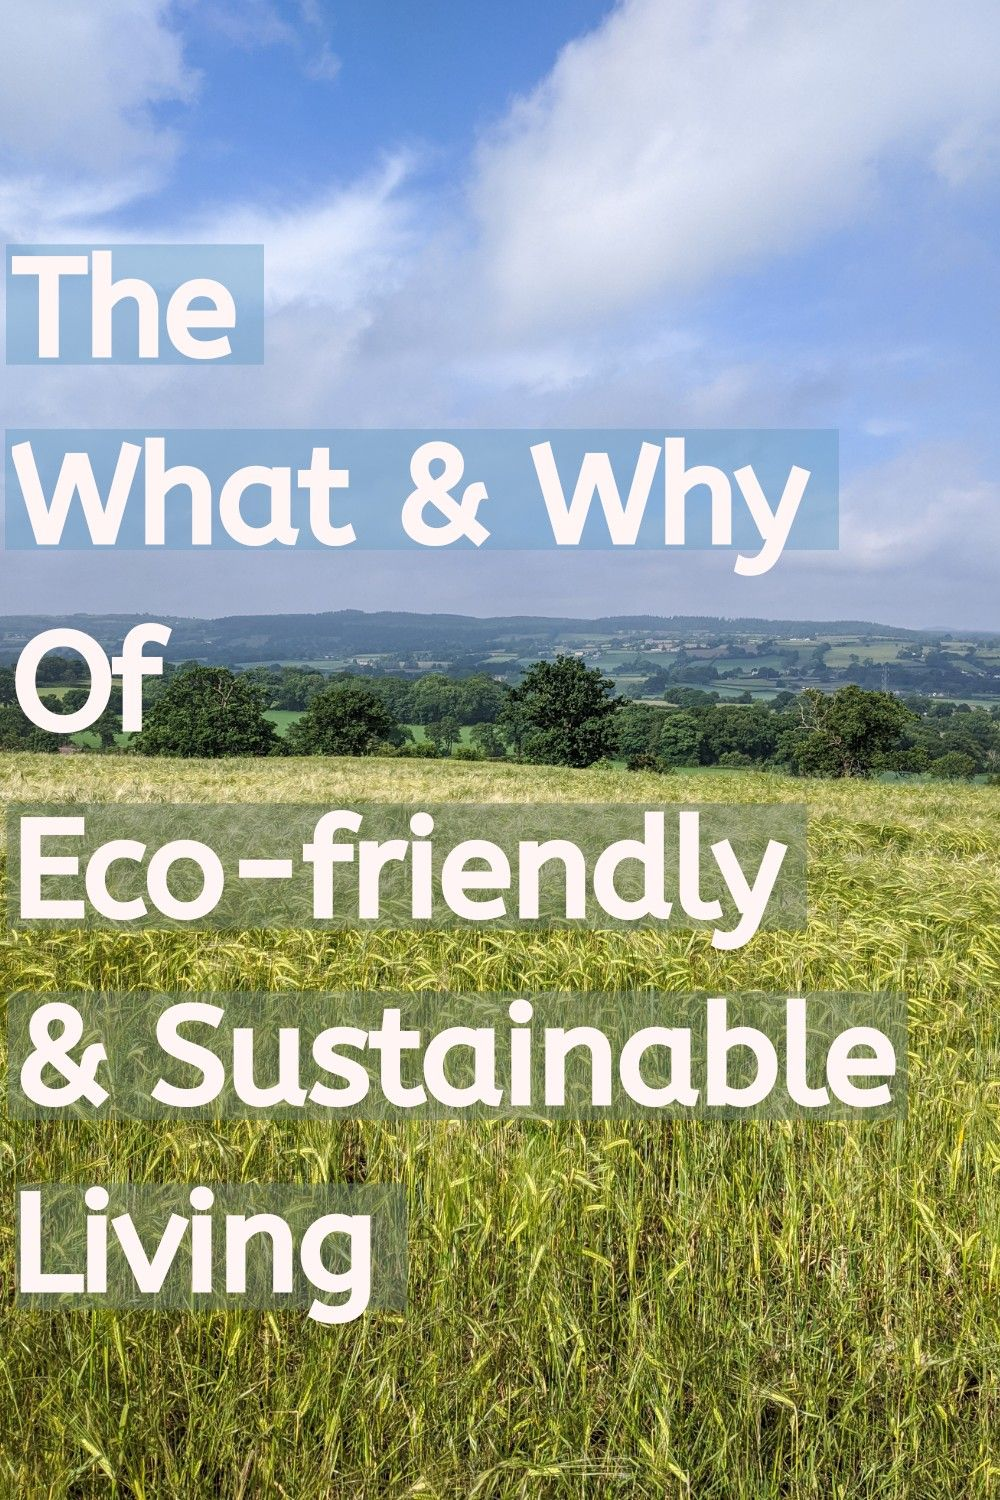 The words often get thrown around, so what do they really mean and why is this lifestyle important? #ecofriendly #ecofriendlyliving #sustainable #sustainableliving